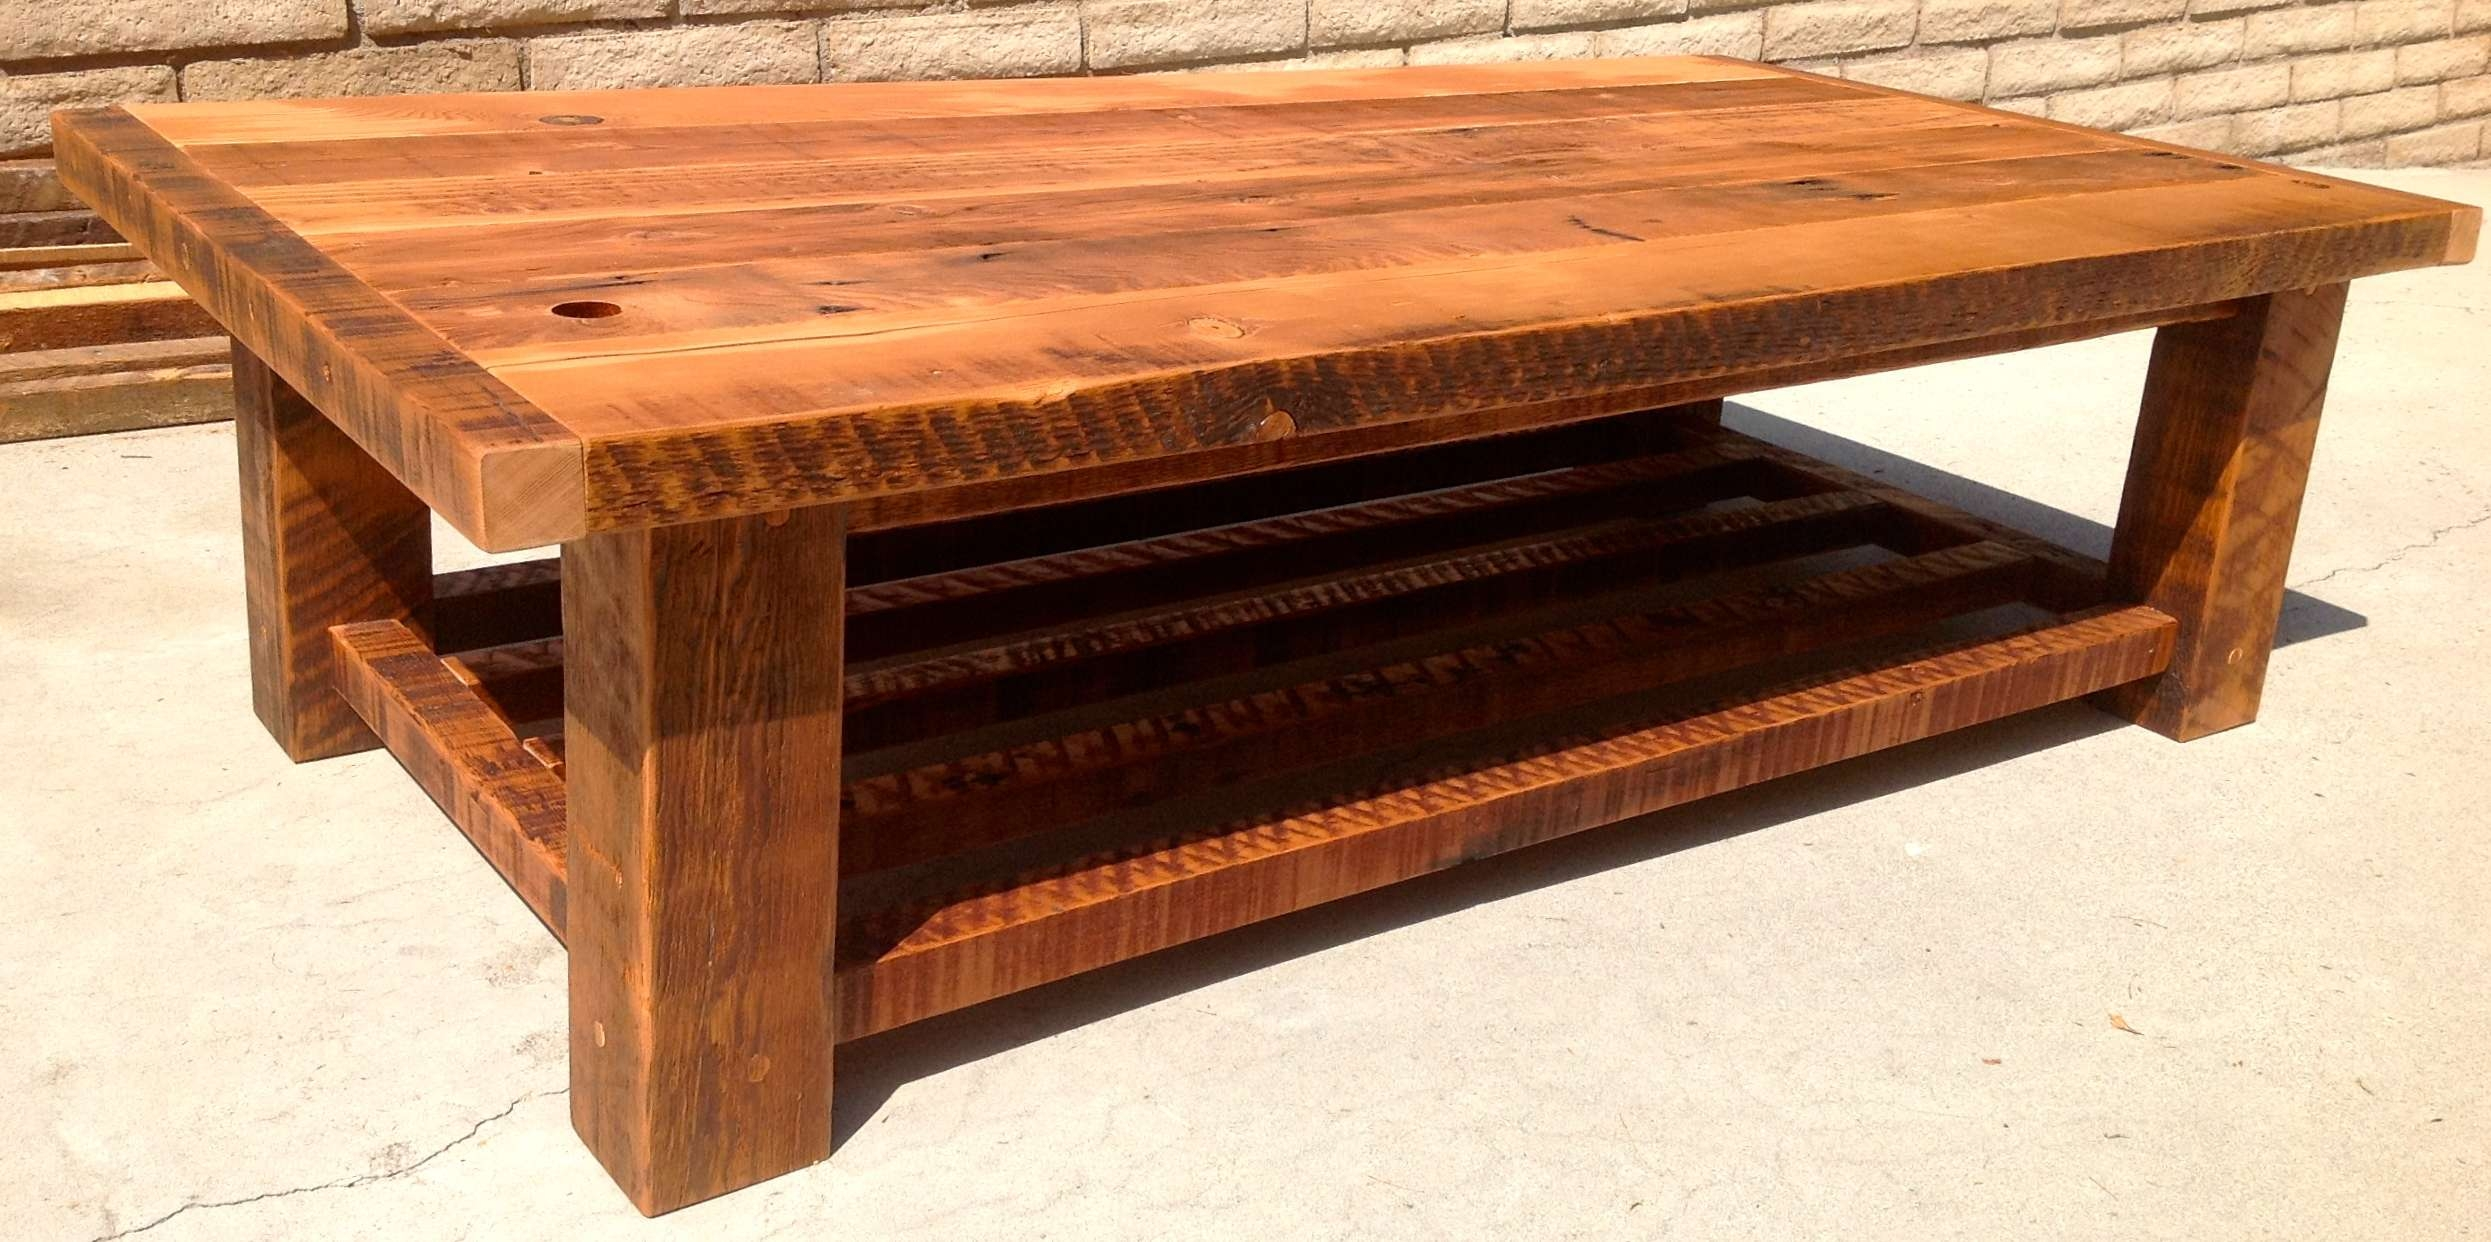 Well Known Unusual Wooden Coffee Tables Within Coffee Table : Unusual Wooden Coffee Tables Wood Narrow Glass (View 19 of 20)